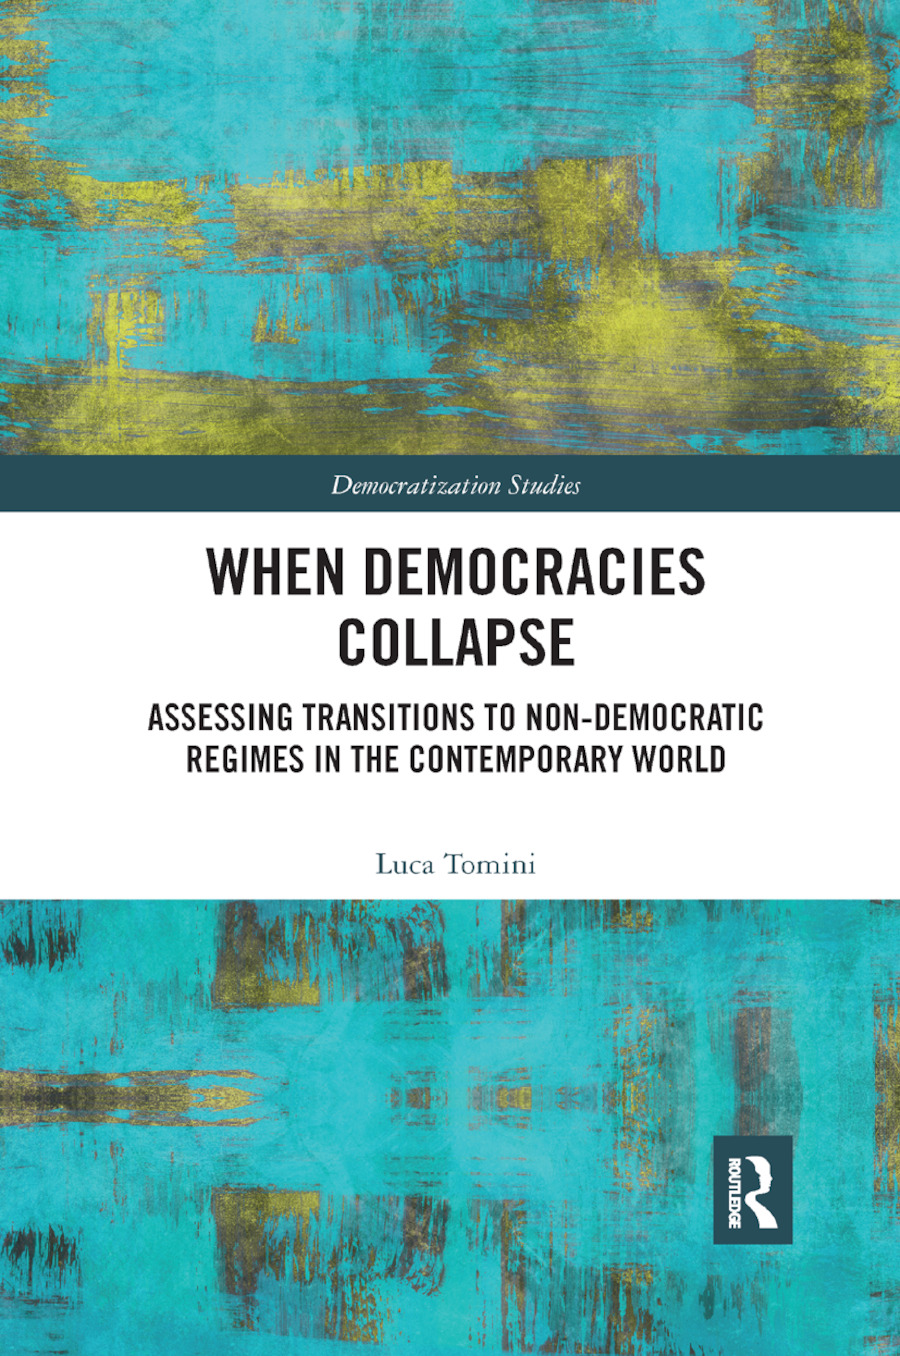 When Democracies Collapse: Assessing Transitions to Non-Democratic Regimes in the Contemporary World book cover